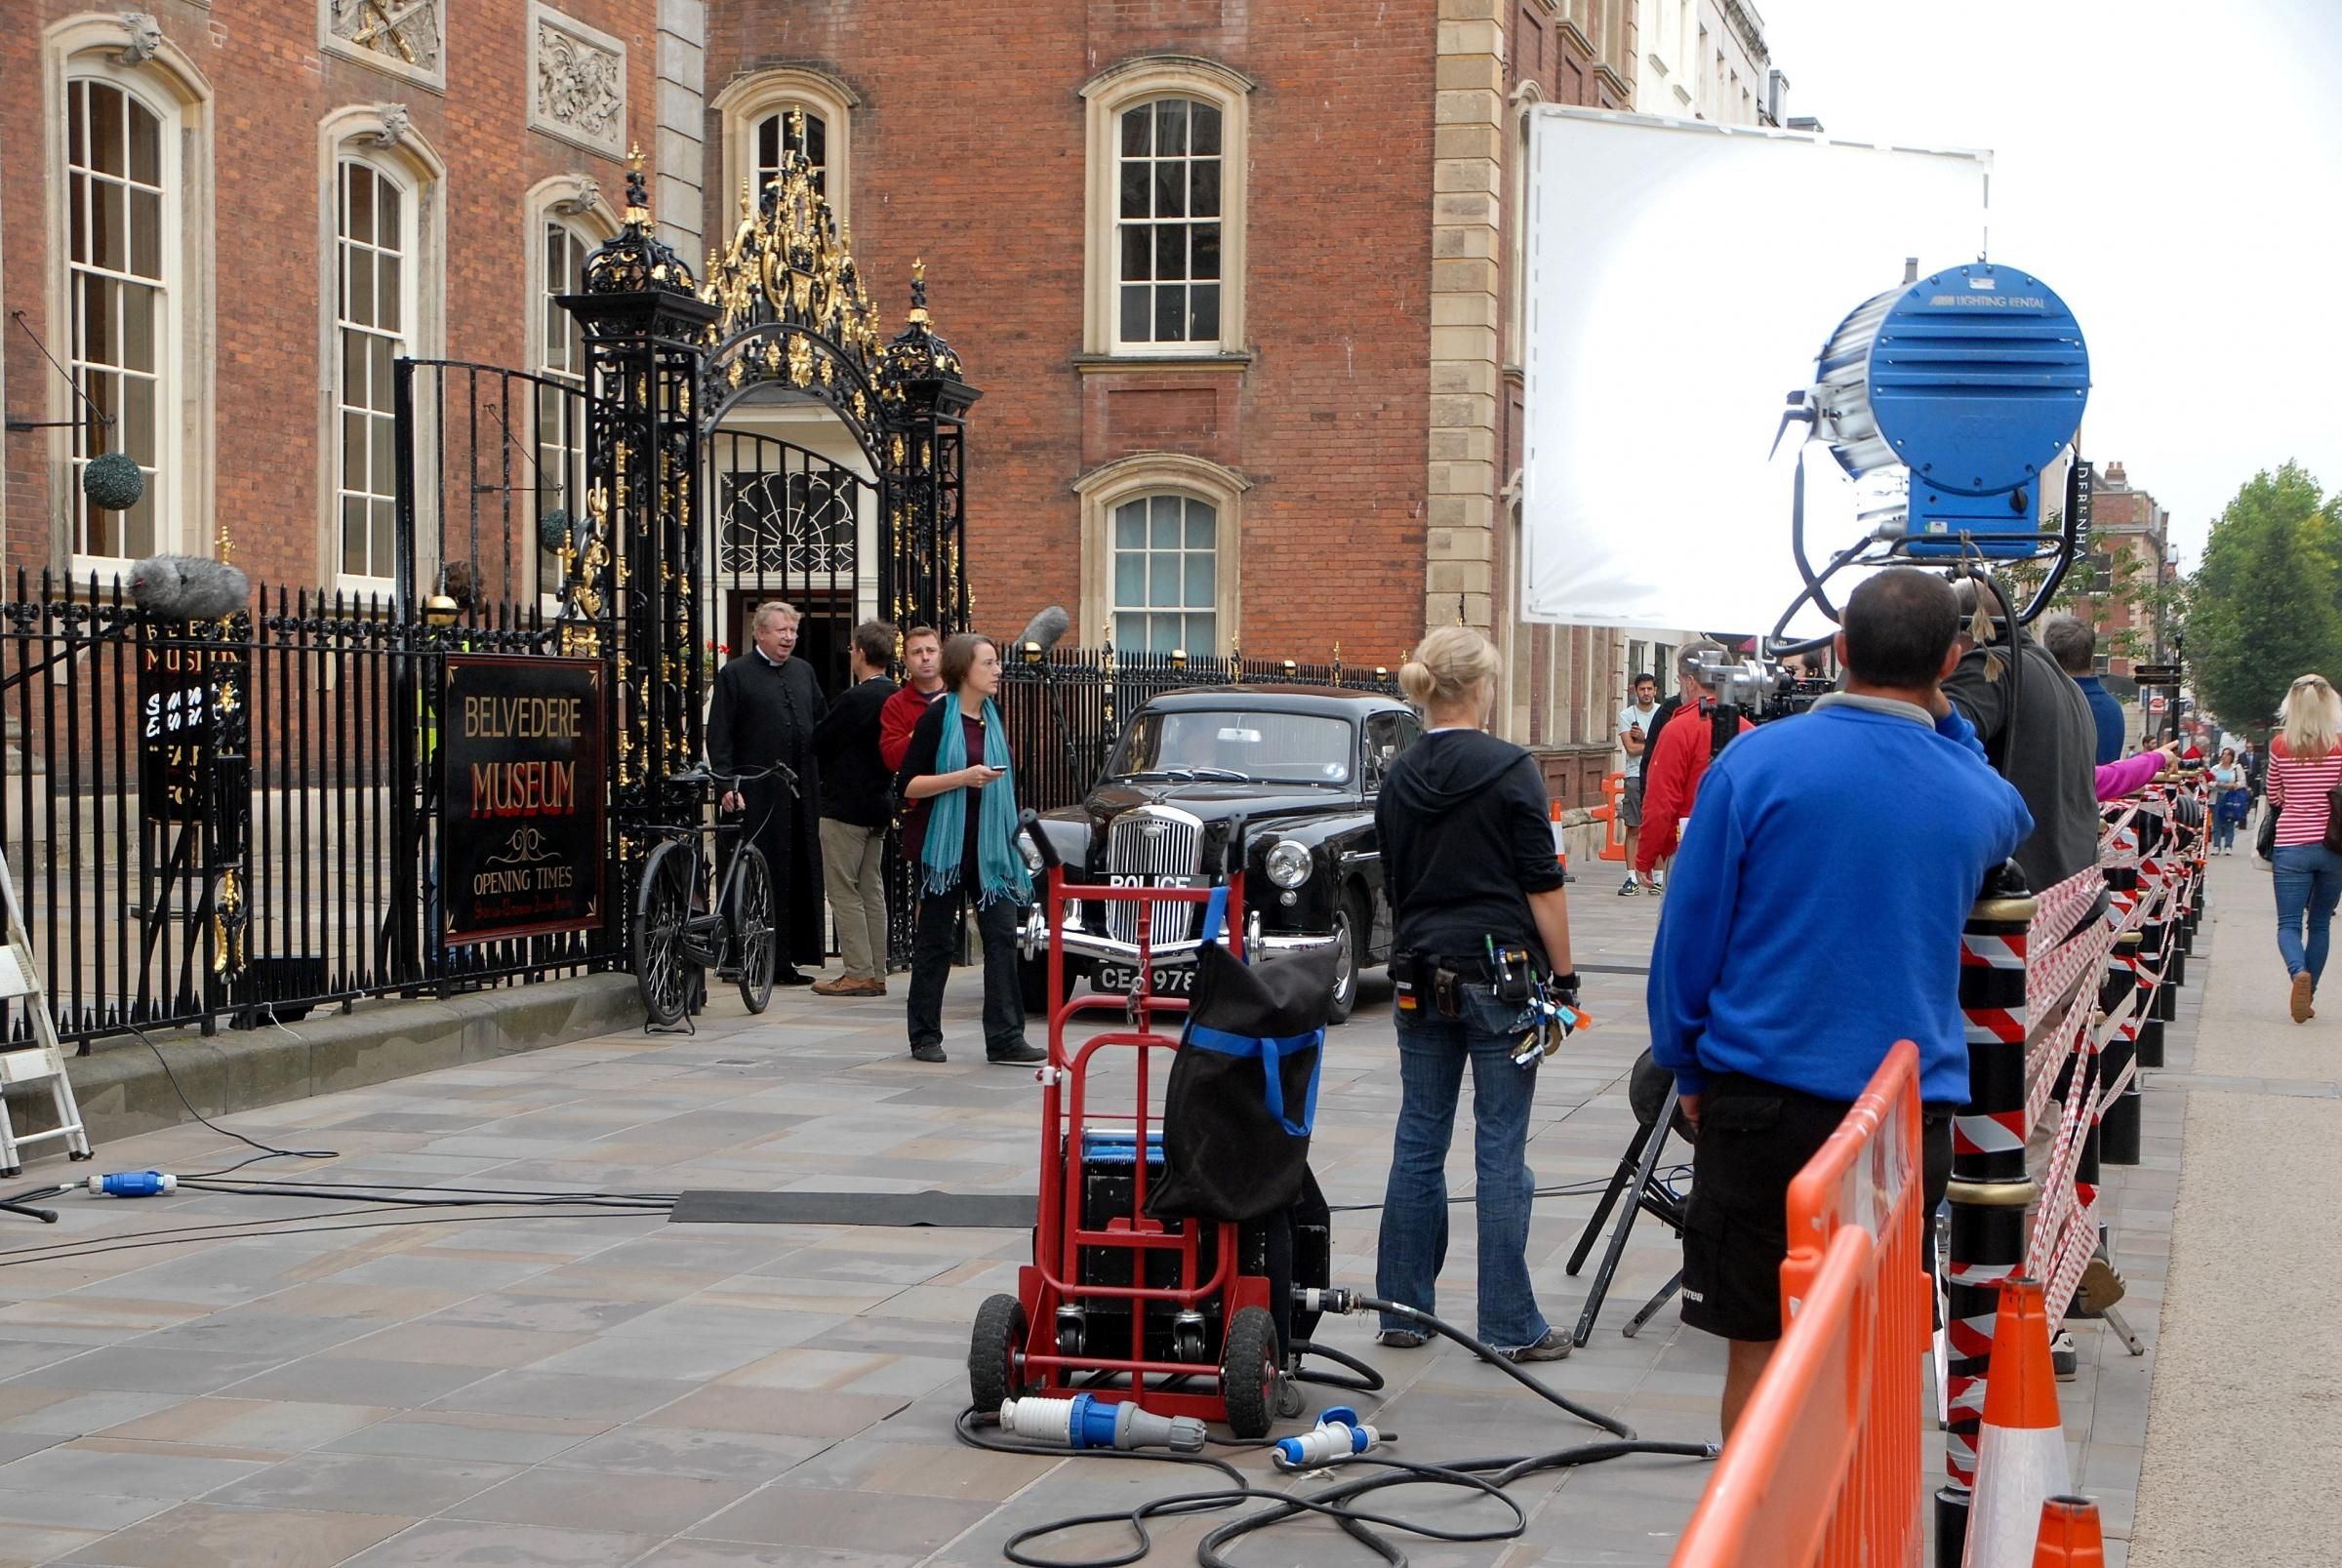 Father Brown films at the Guildhall